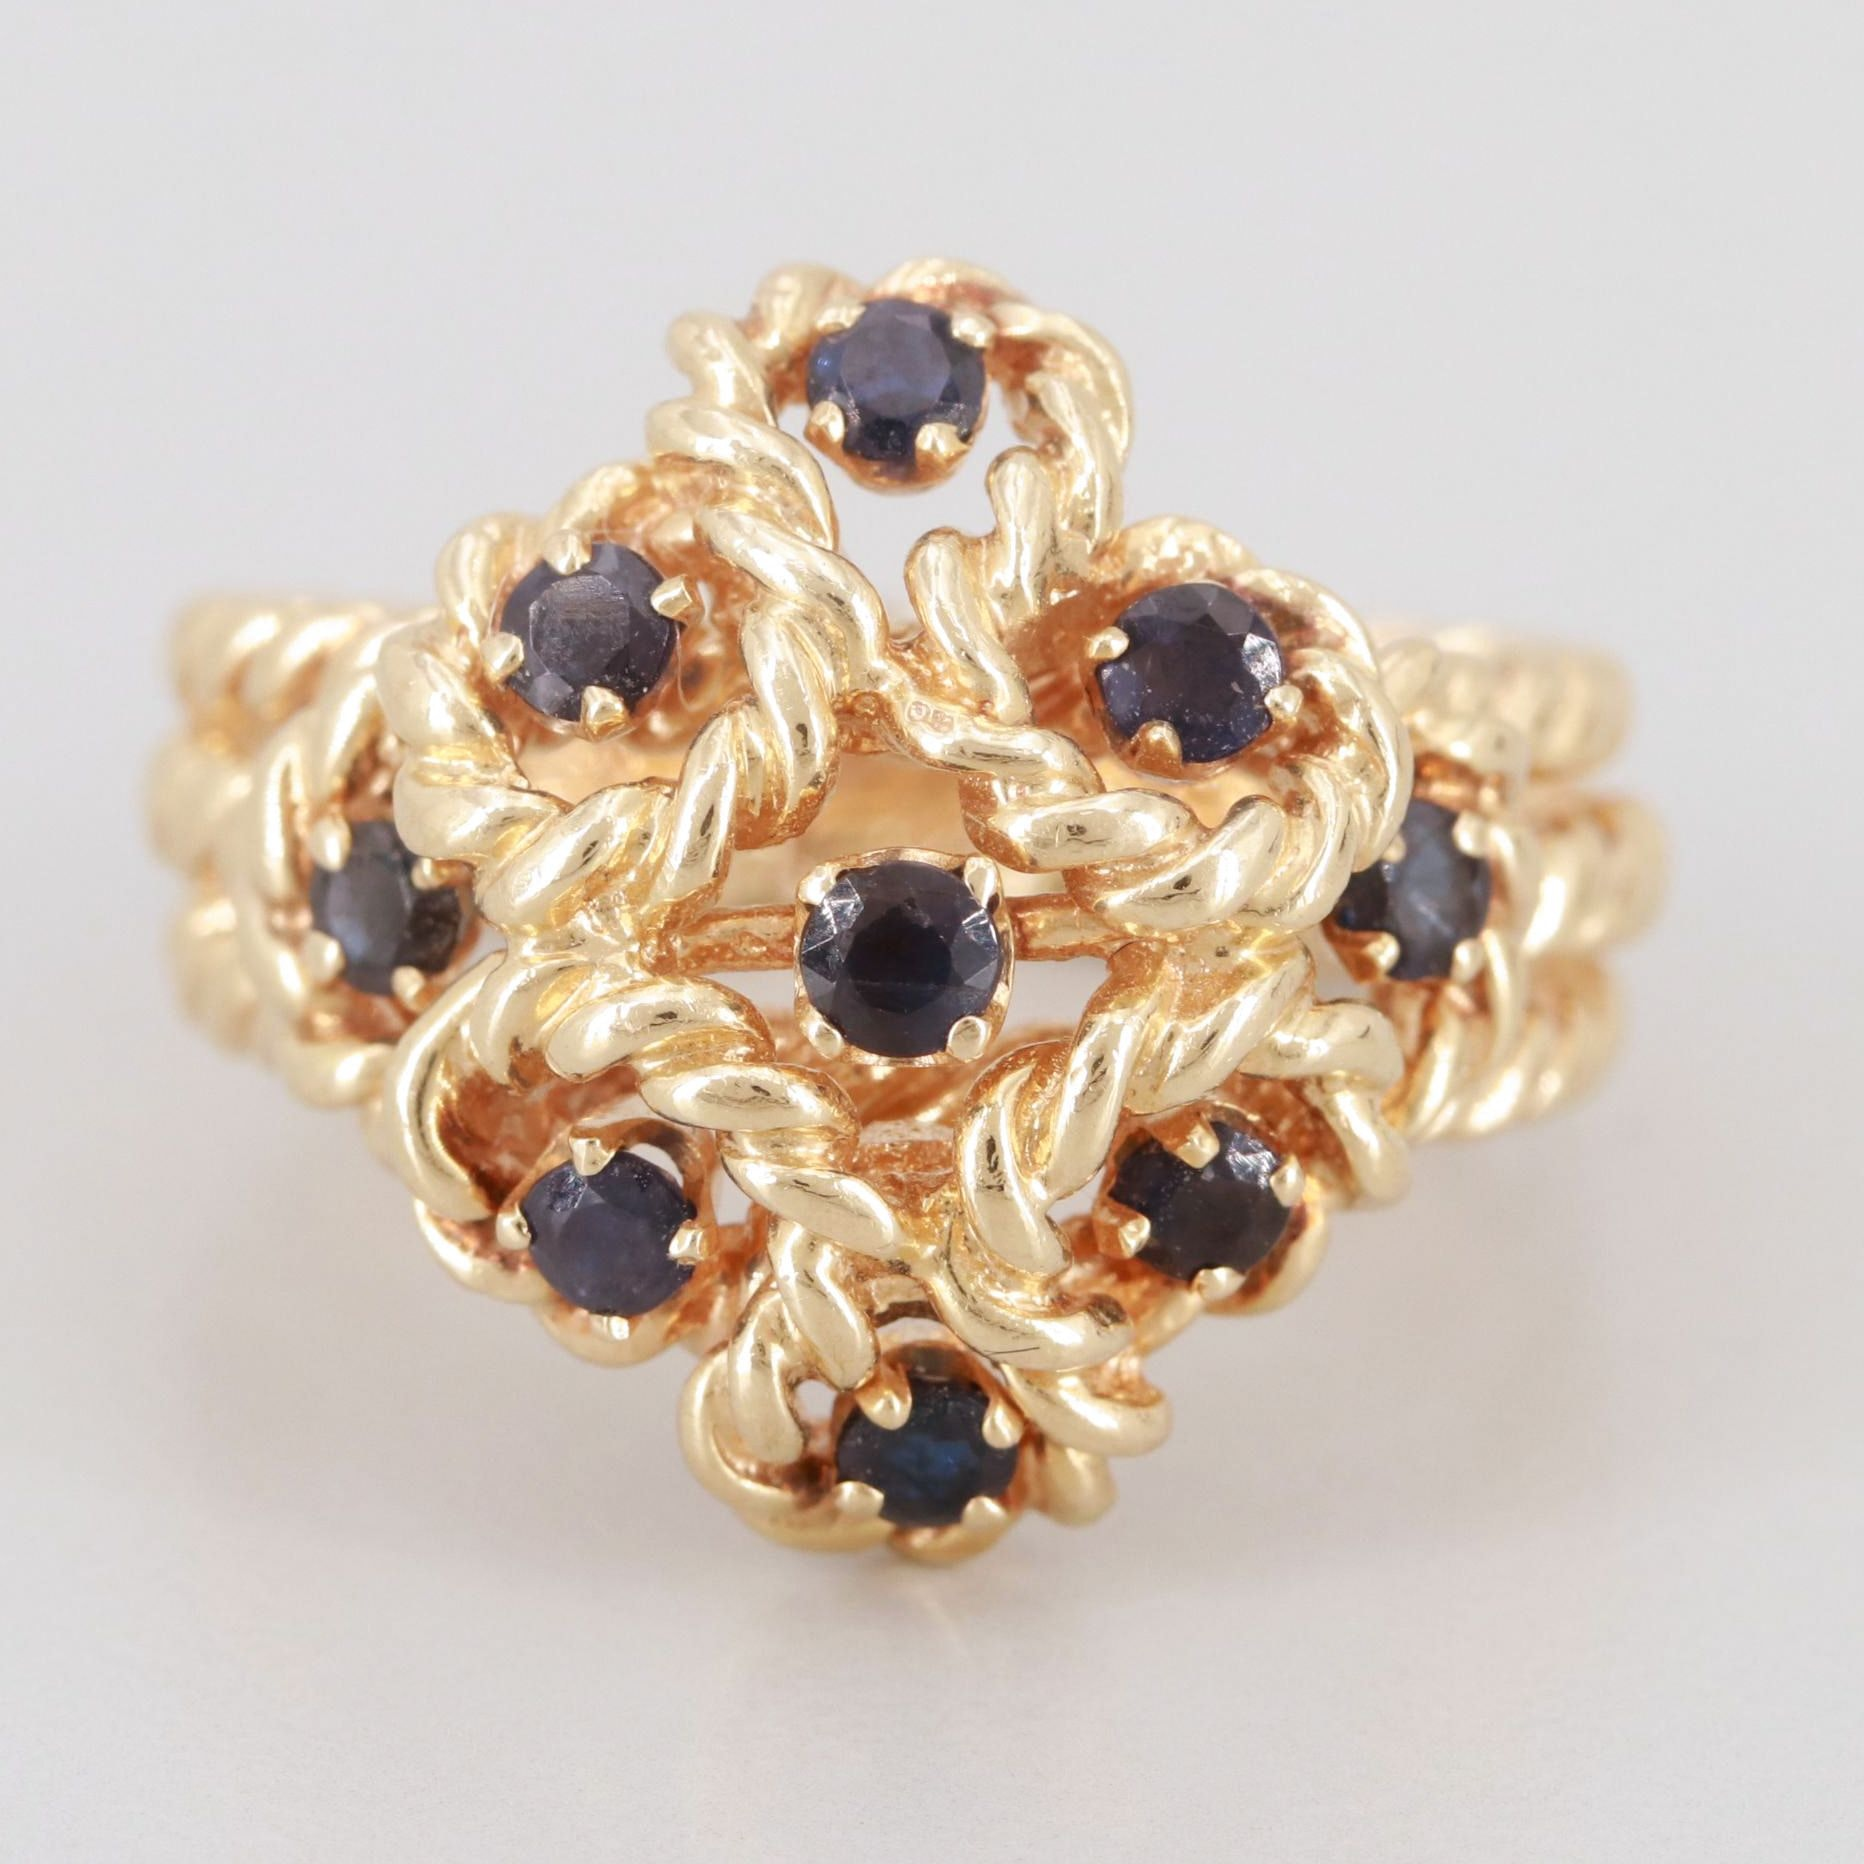 14K Yellow Gold Sapphire Ring With Twisted Rope Motif